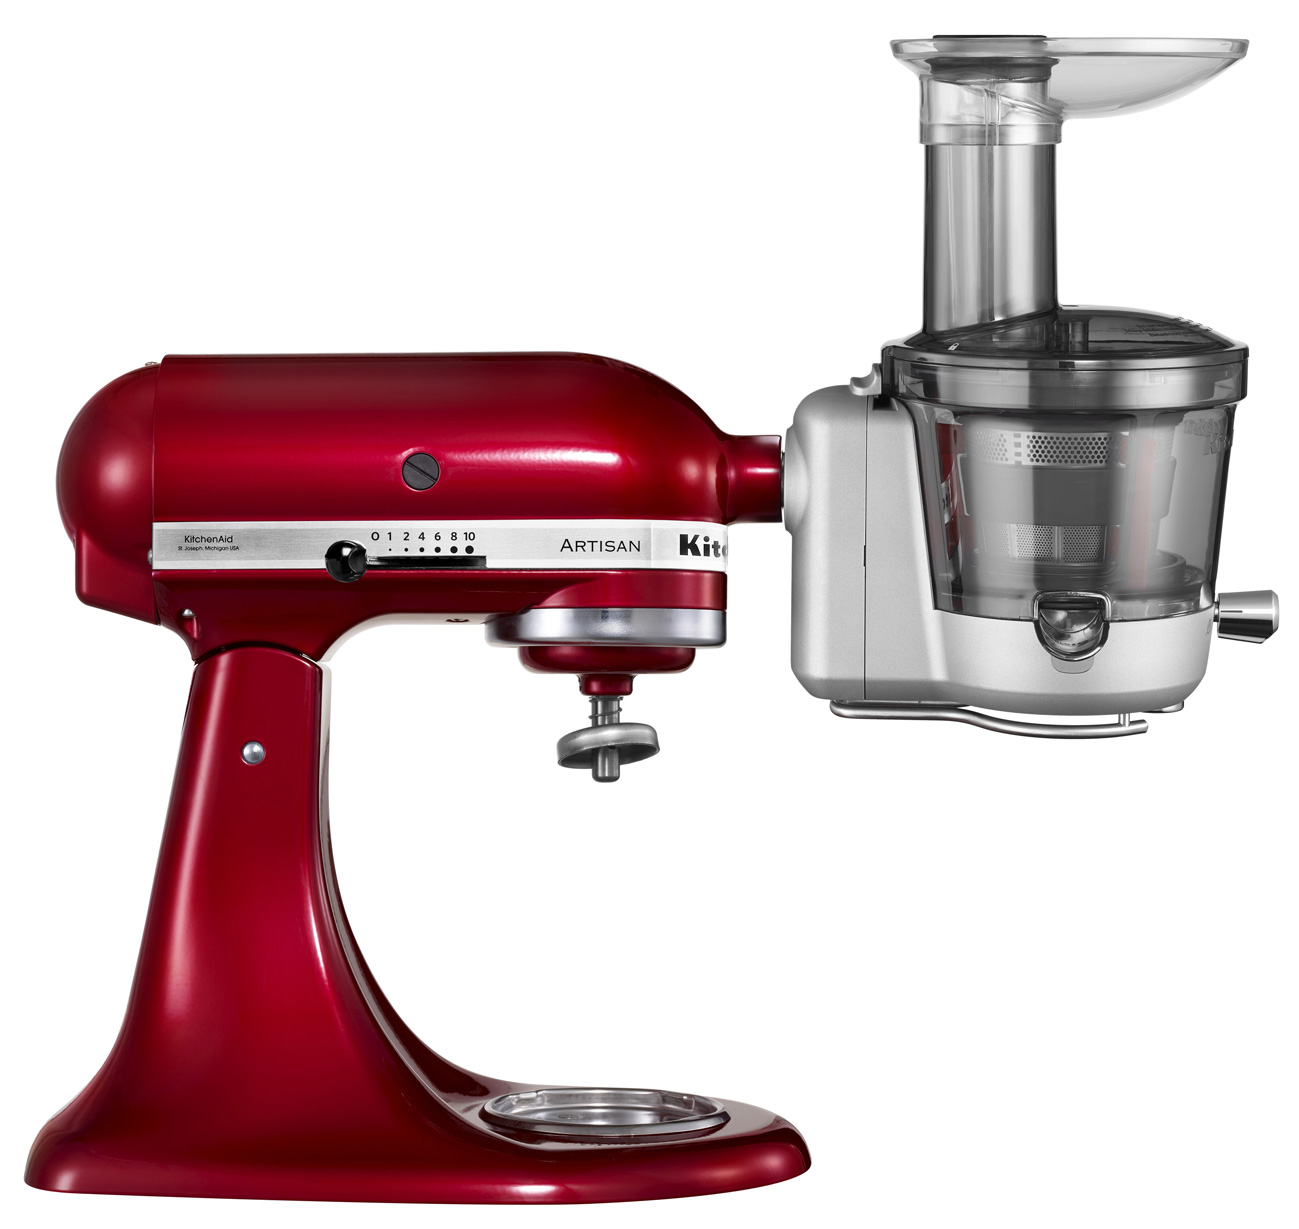 Entsafter kitchenaid test